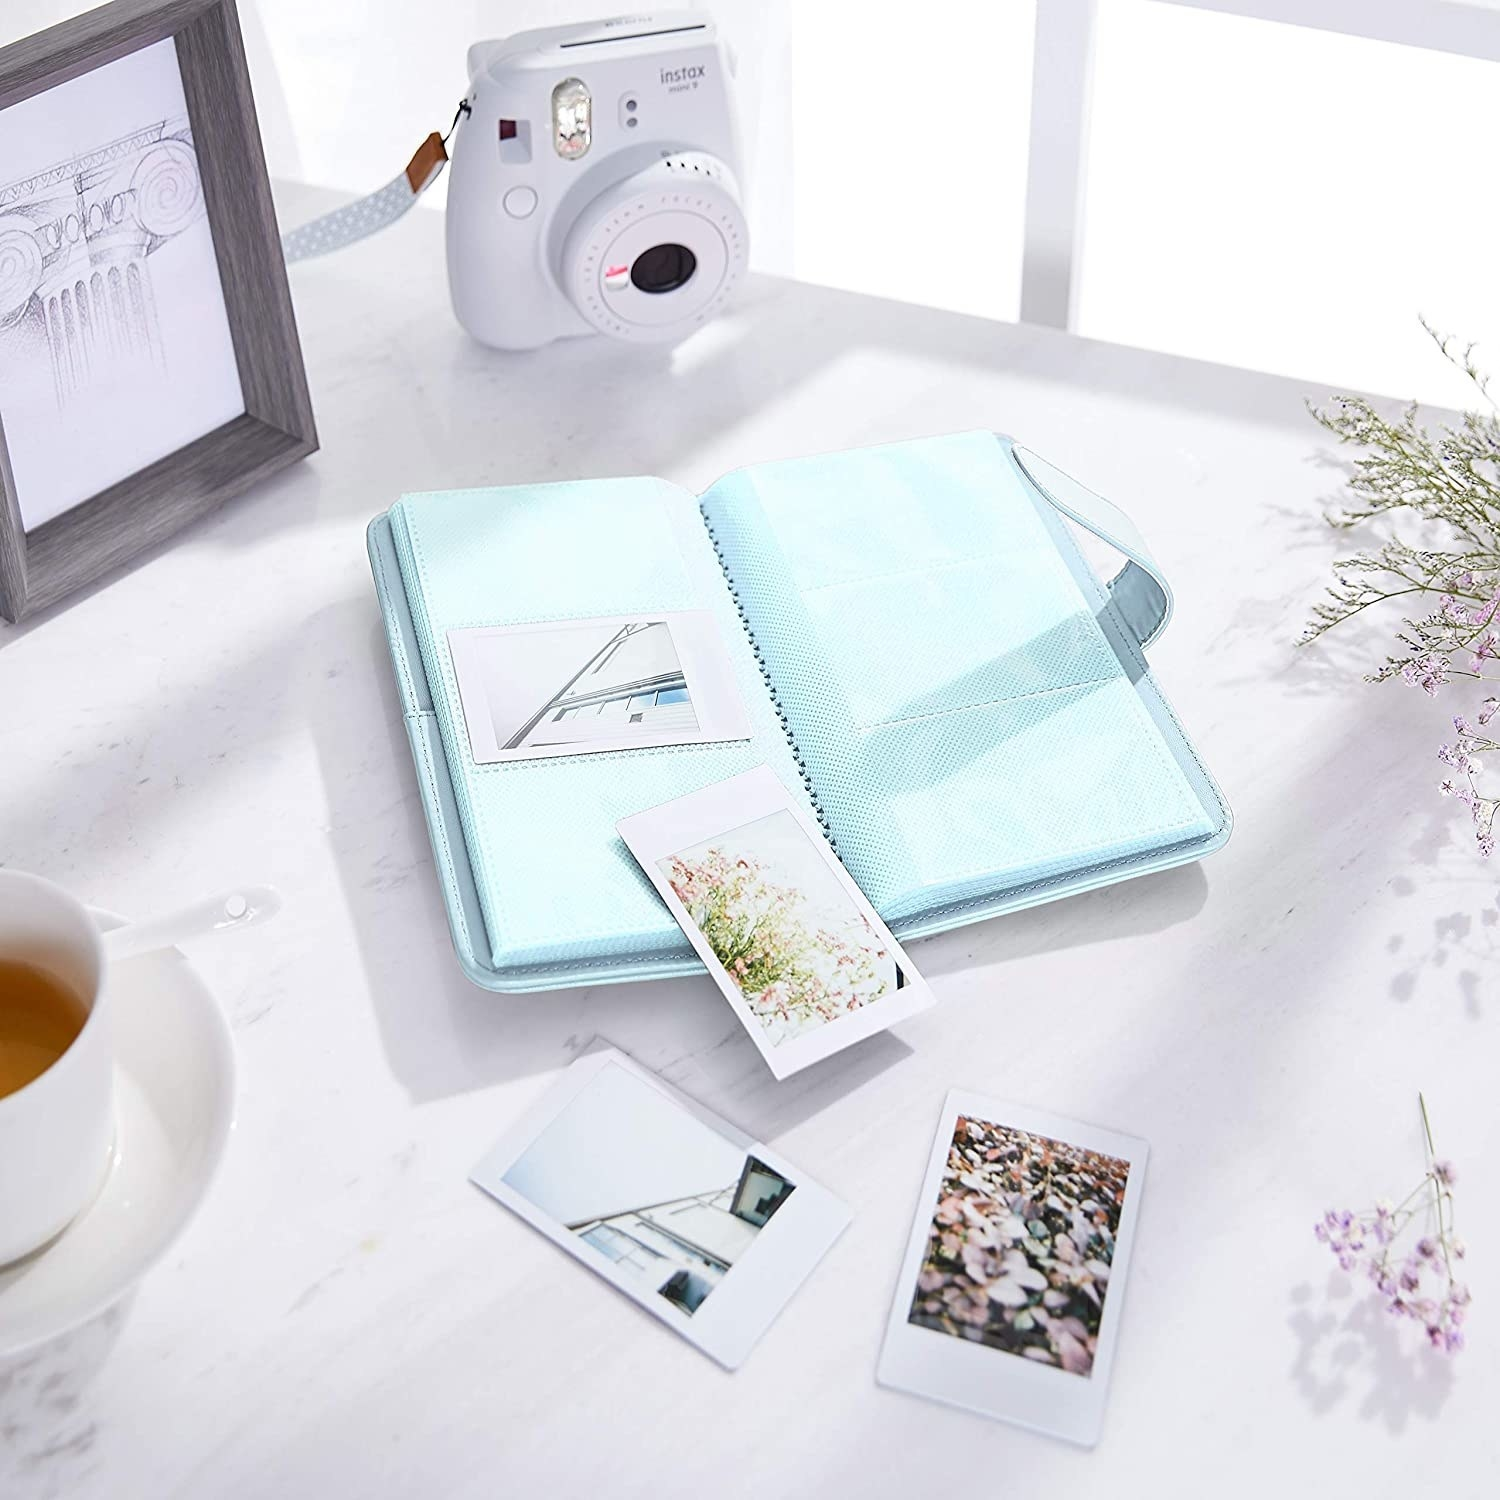 photo album surrounded by photos